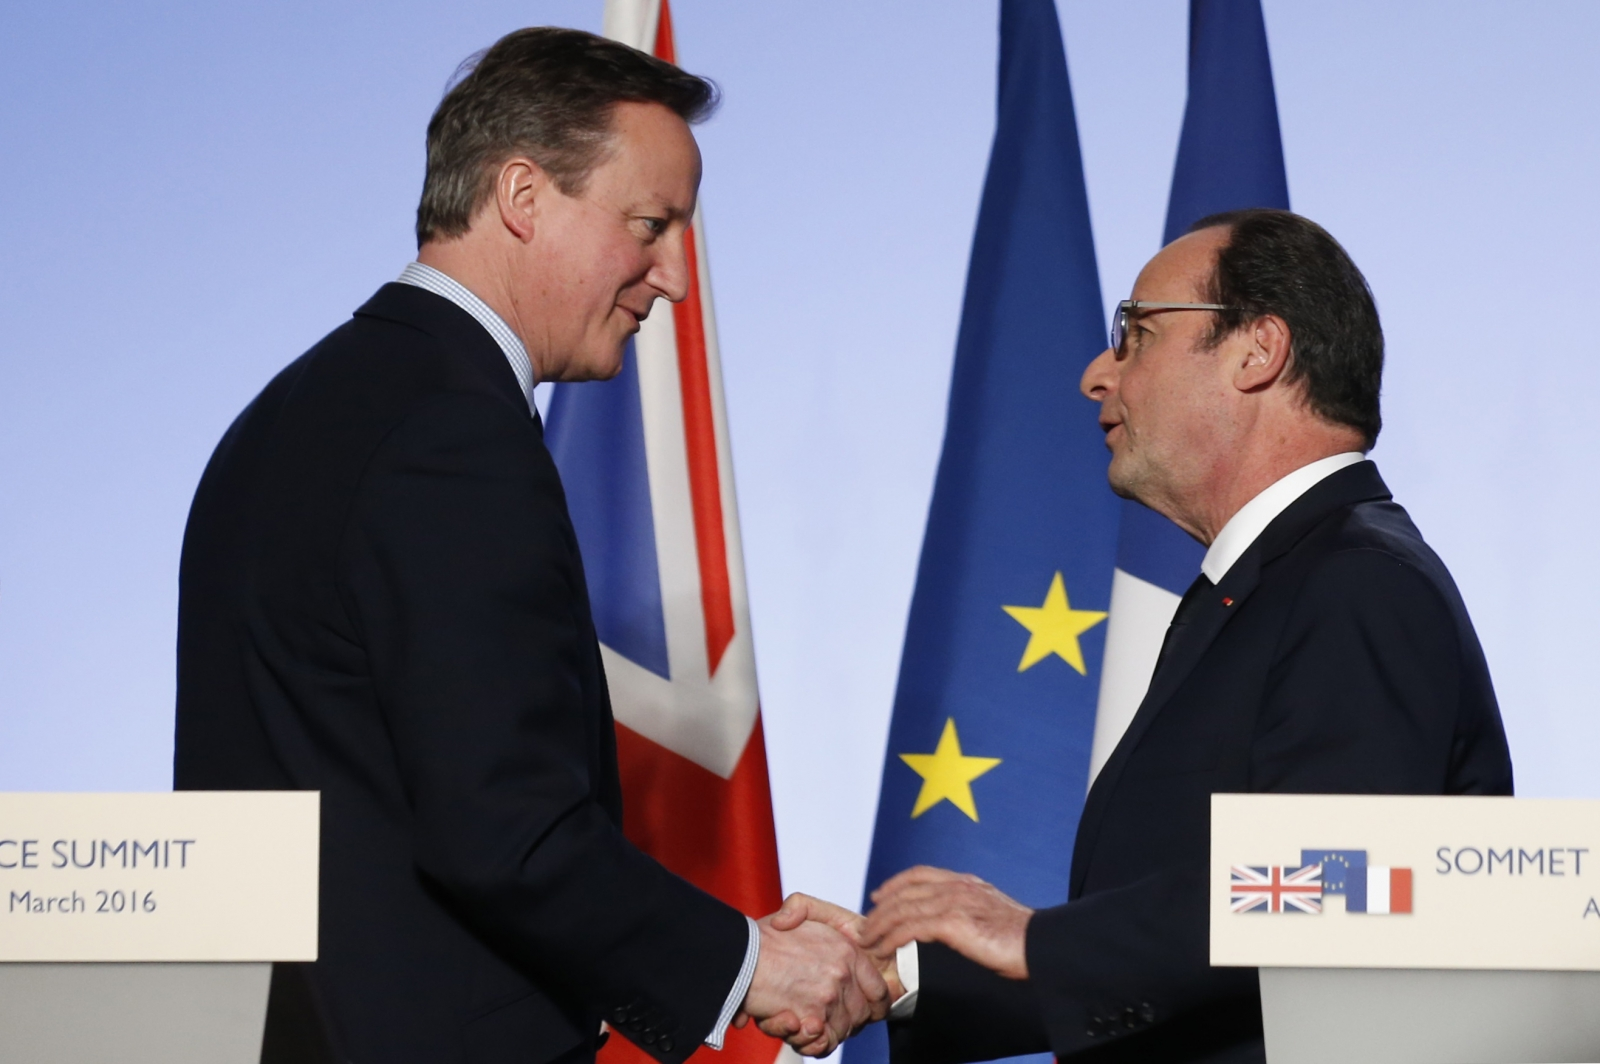 France and Britain relationship